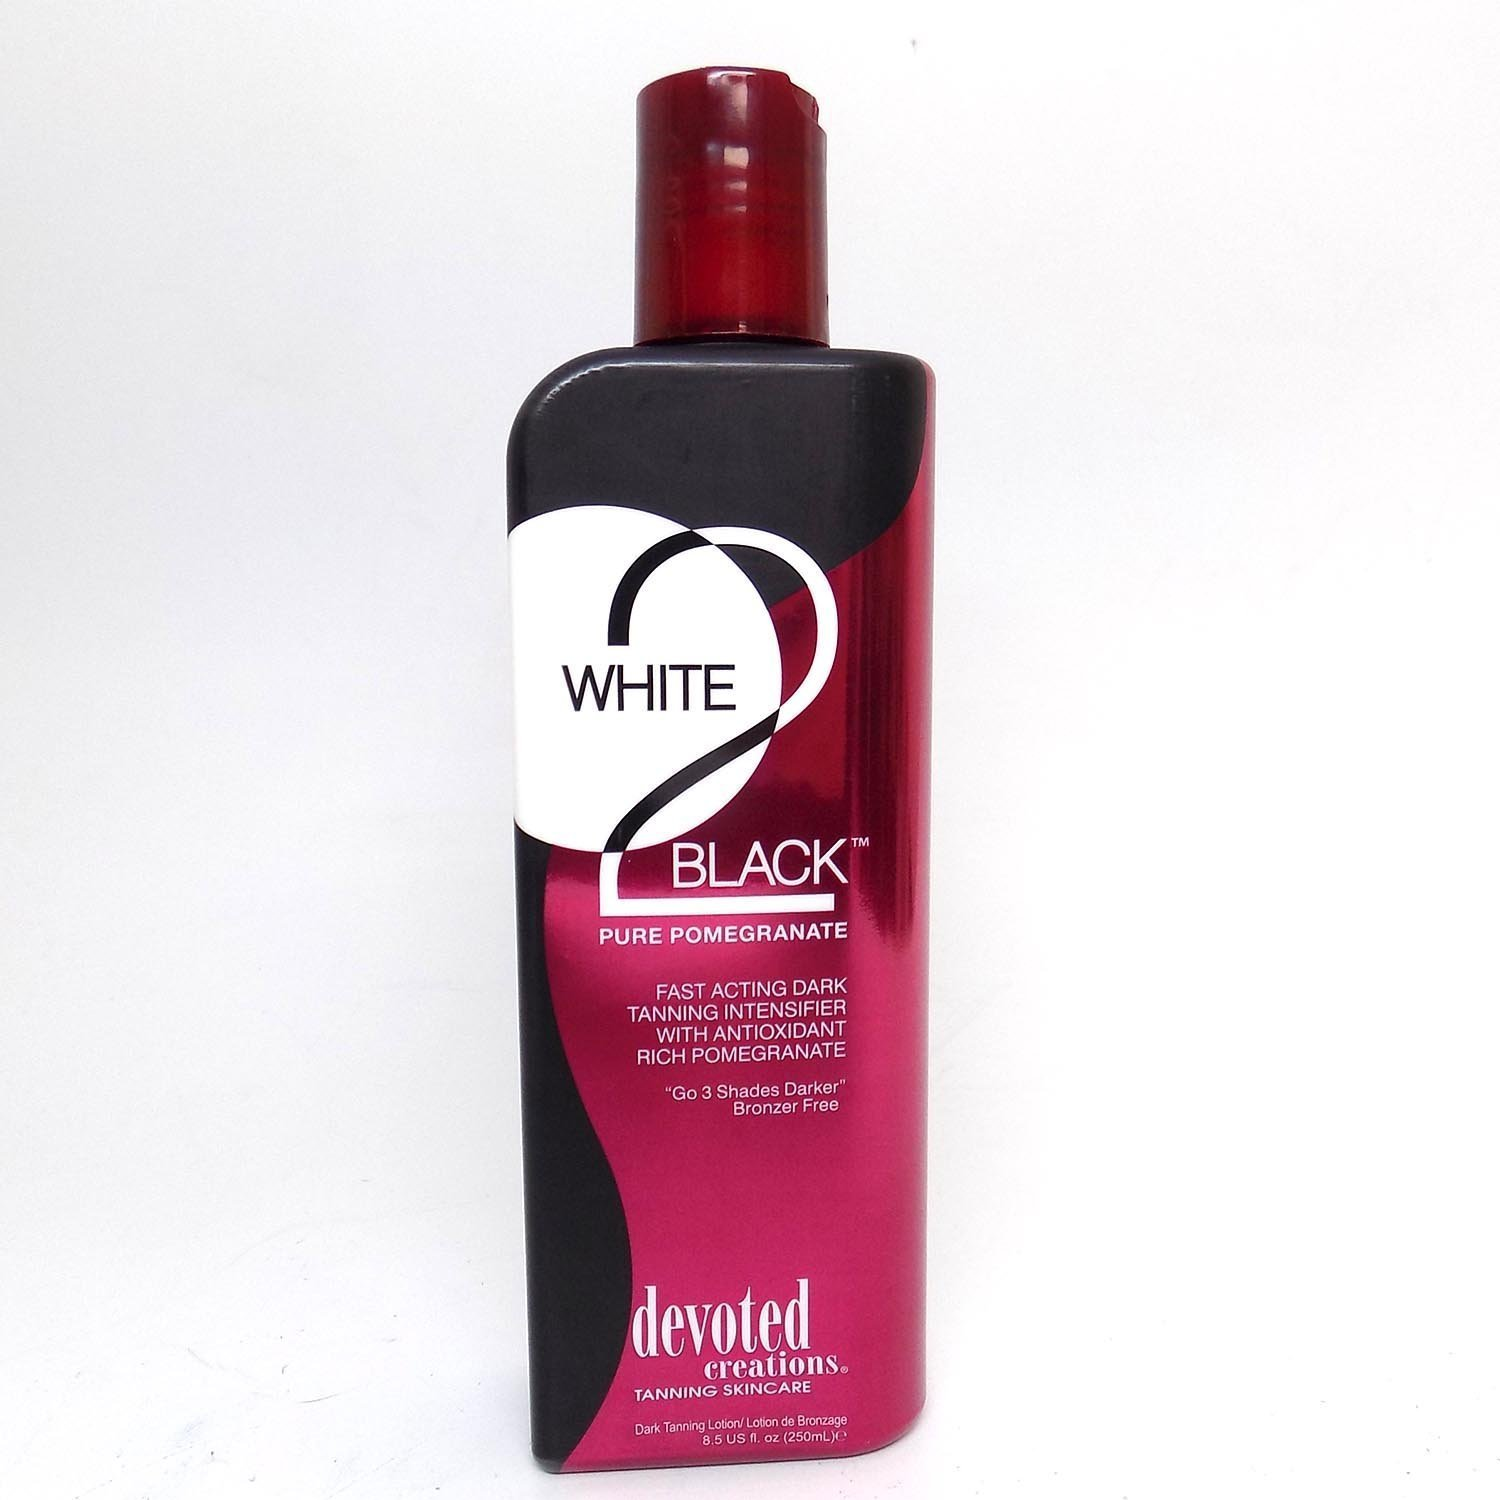 Devoted Creations White 2 Black Pure Pomegranate sunbed tanning lotion cream (250ml bottle)